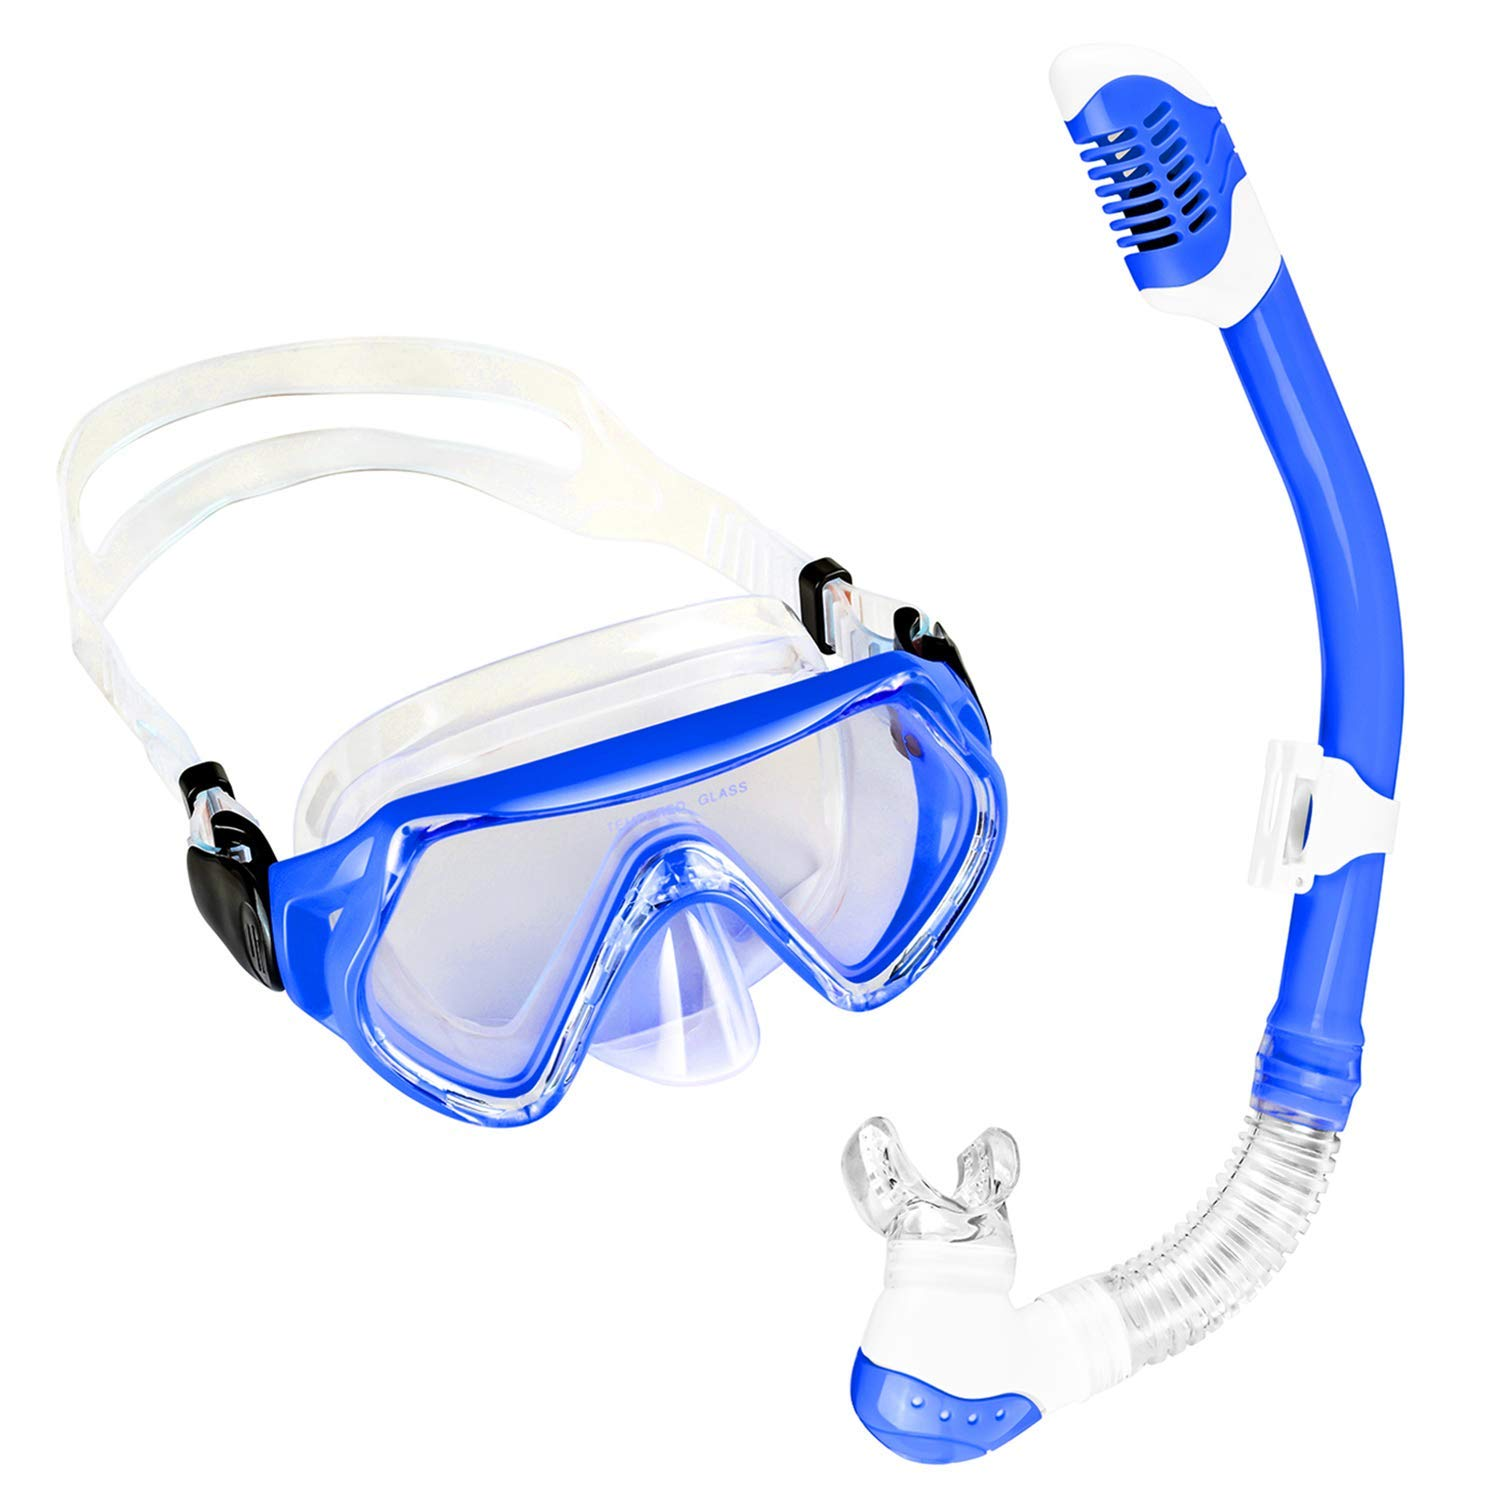 5dacd1cec77 Get Quotations · Sporzin Kids Snorkel Set with Dry Snorkel Anti Leaking Snorkel  Mask and Clear Vision Snorkel Set